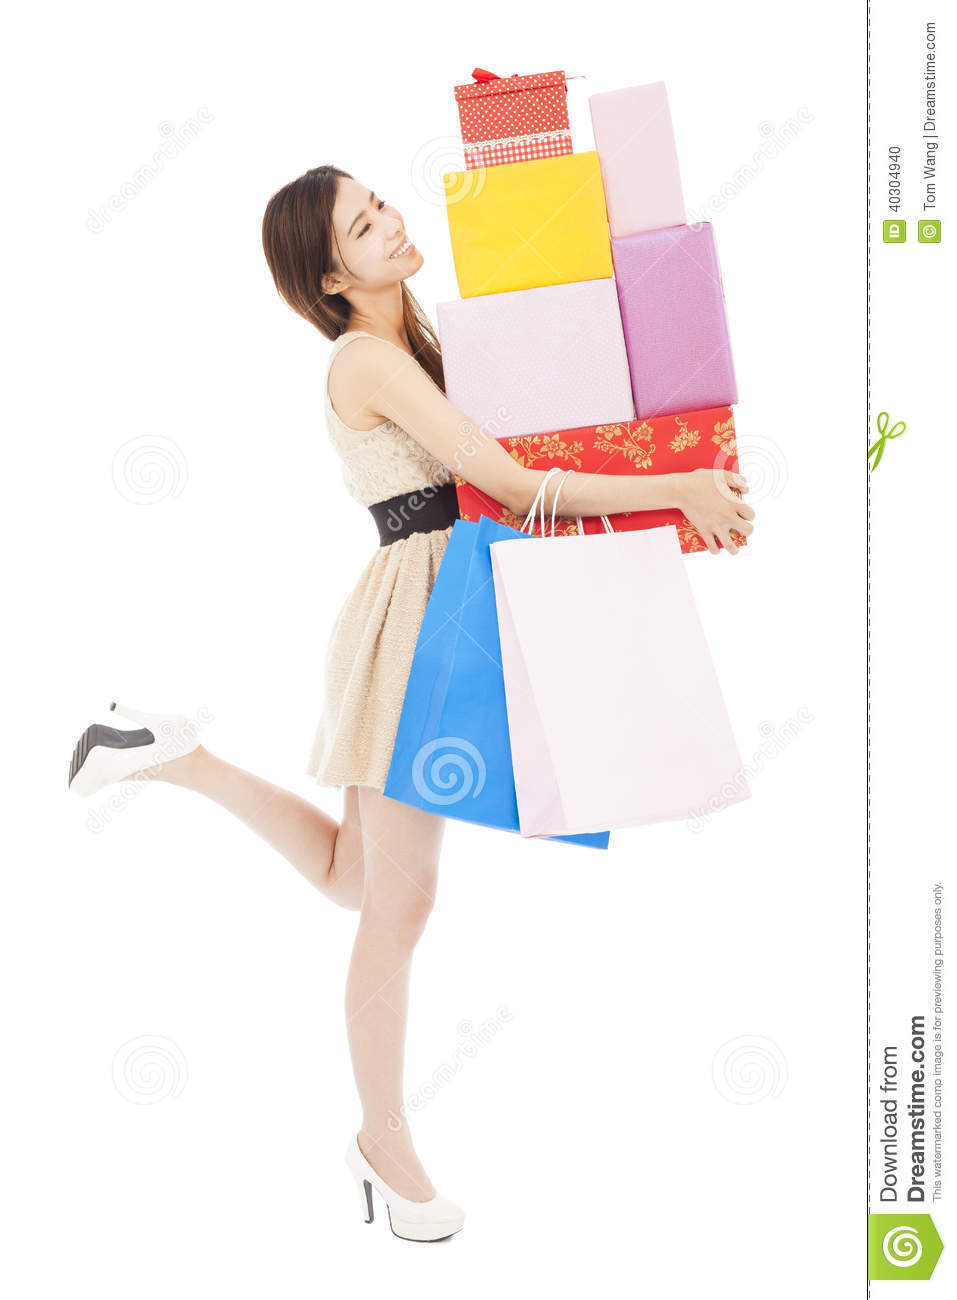 Innovative Woman Holding Shopping Bags Stock Image - Image 11865911